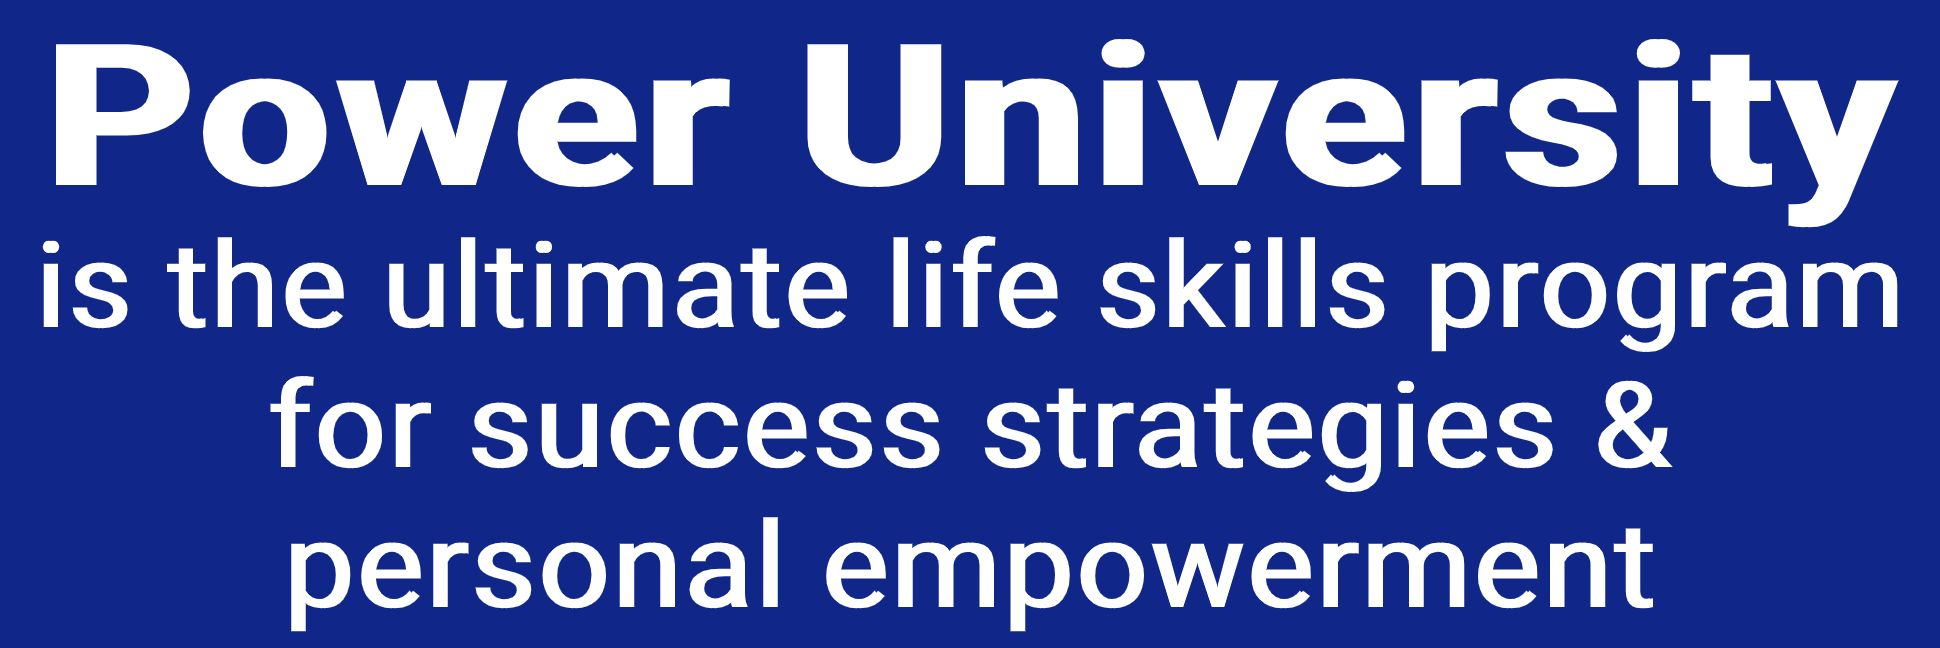 power university banner description